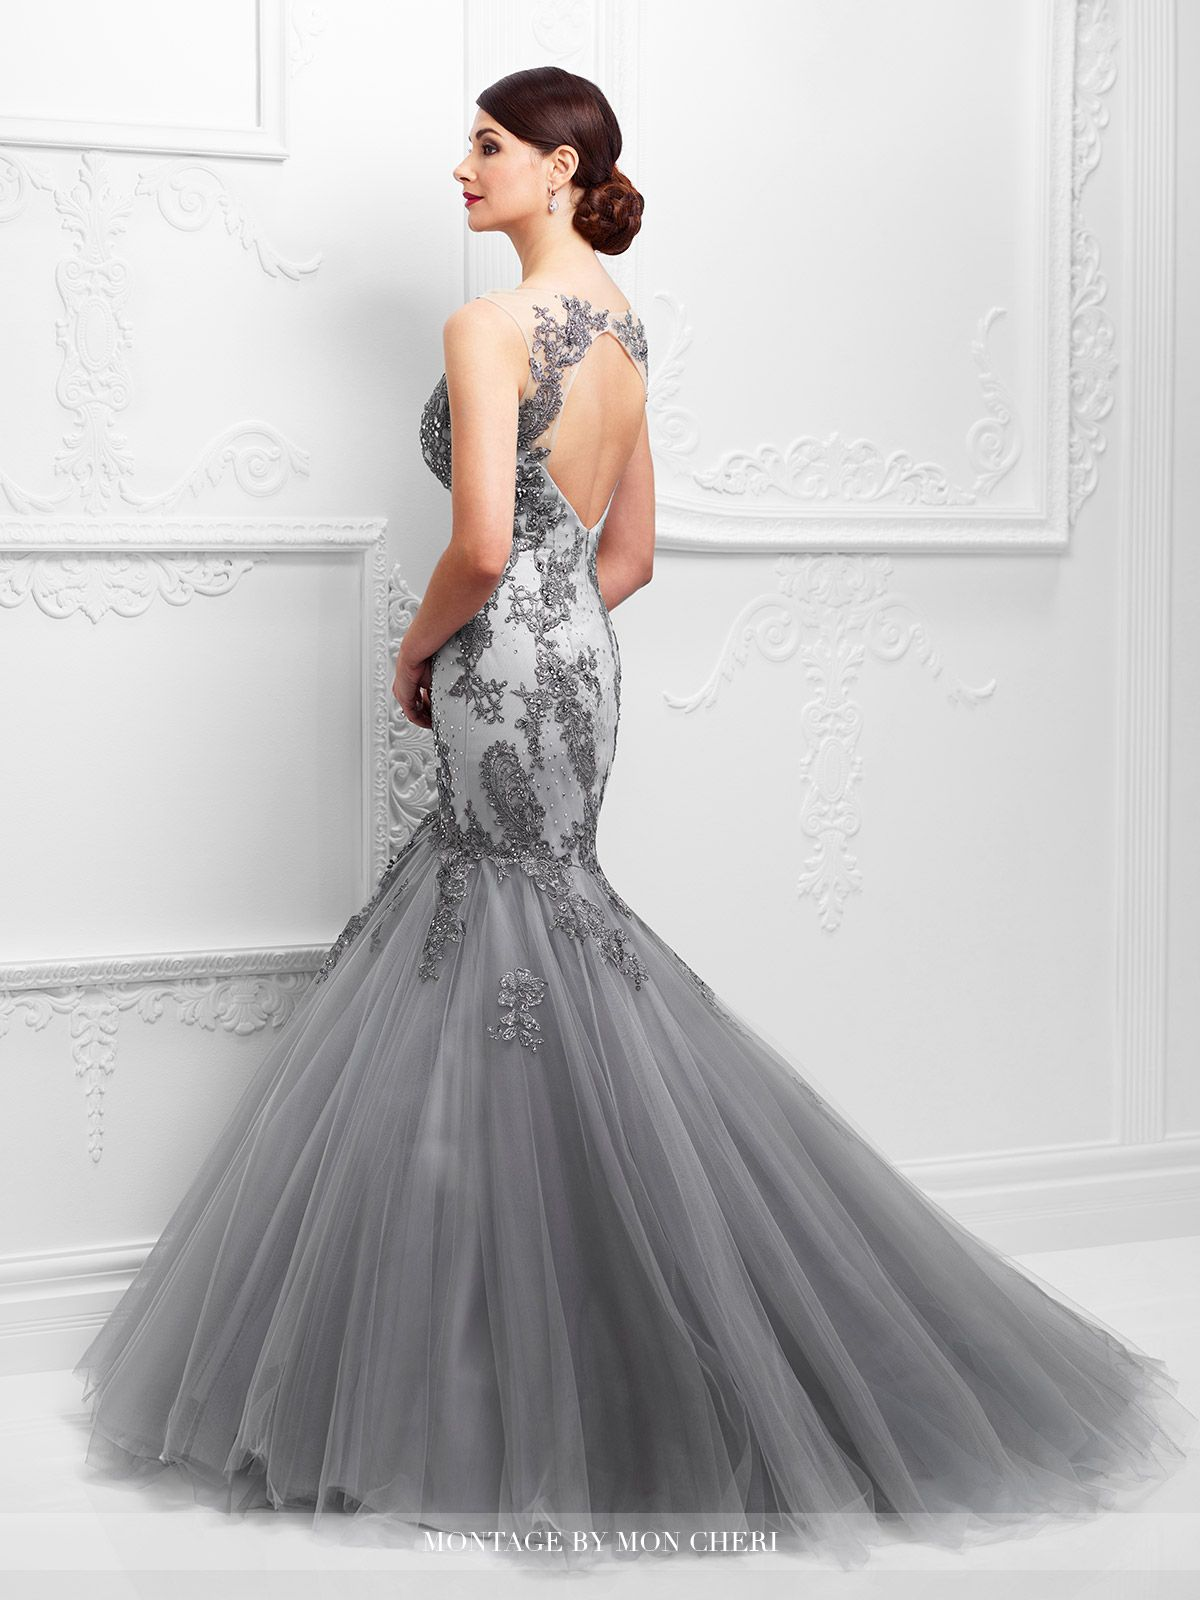 D lace mermaid mermaid gown and beaded lace